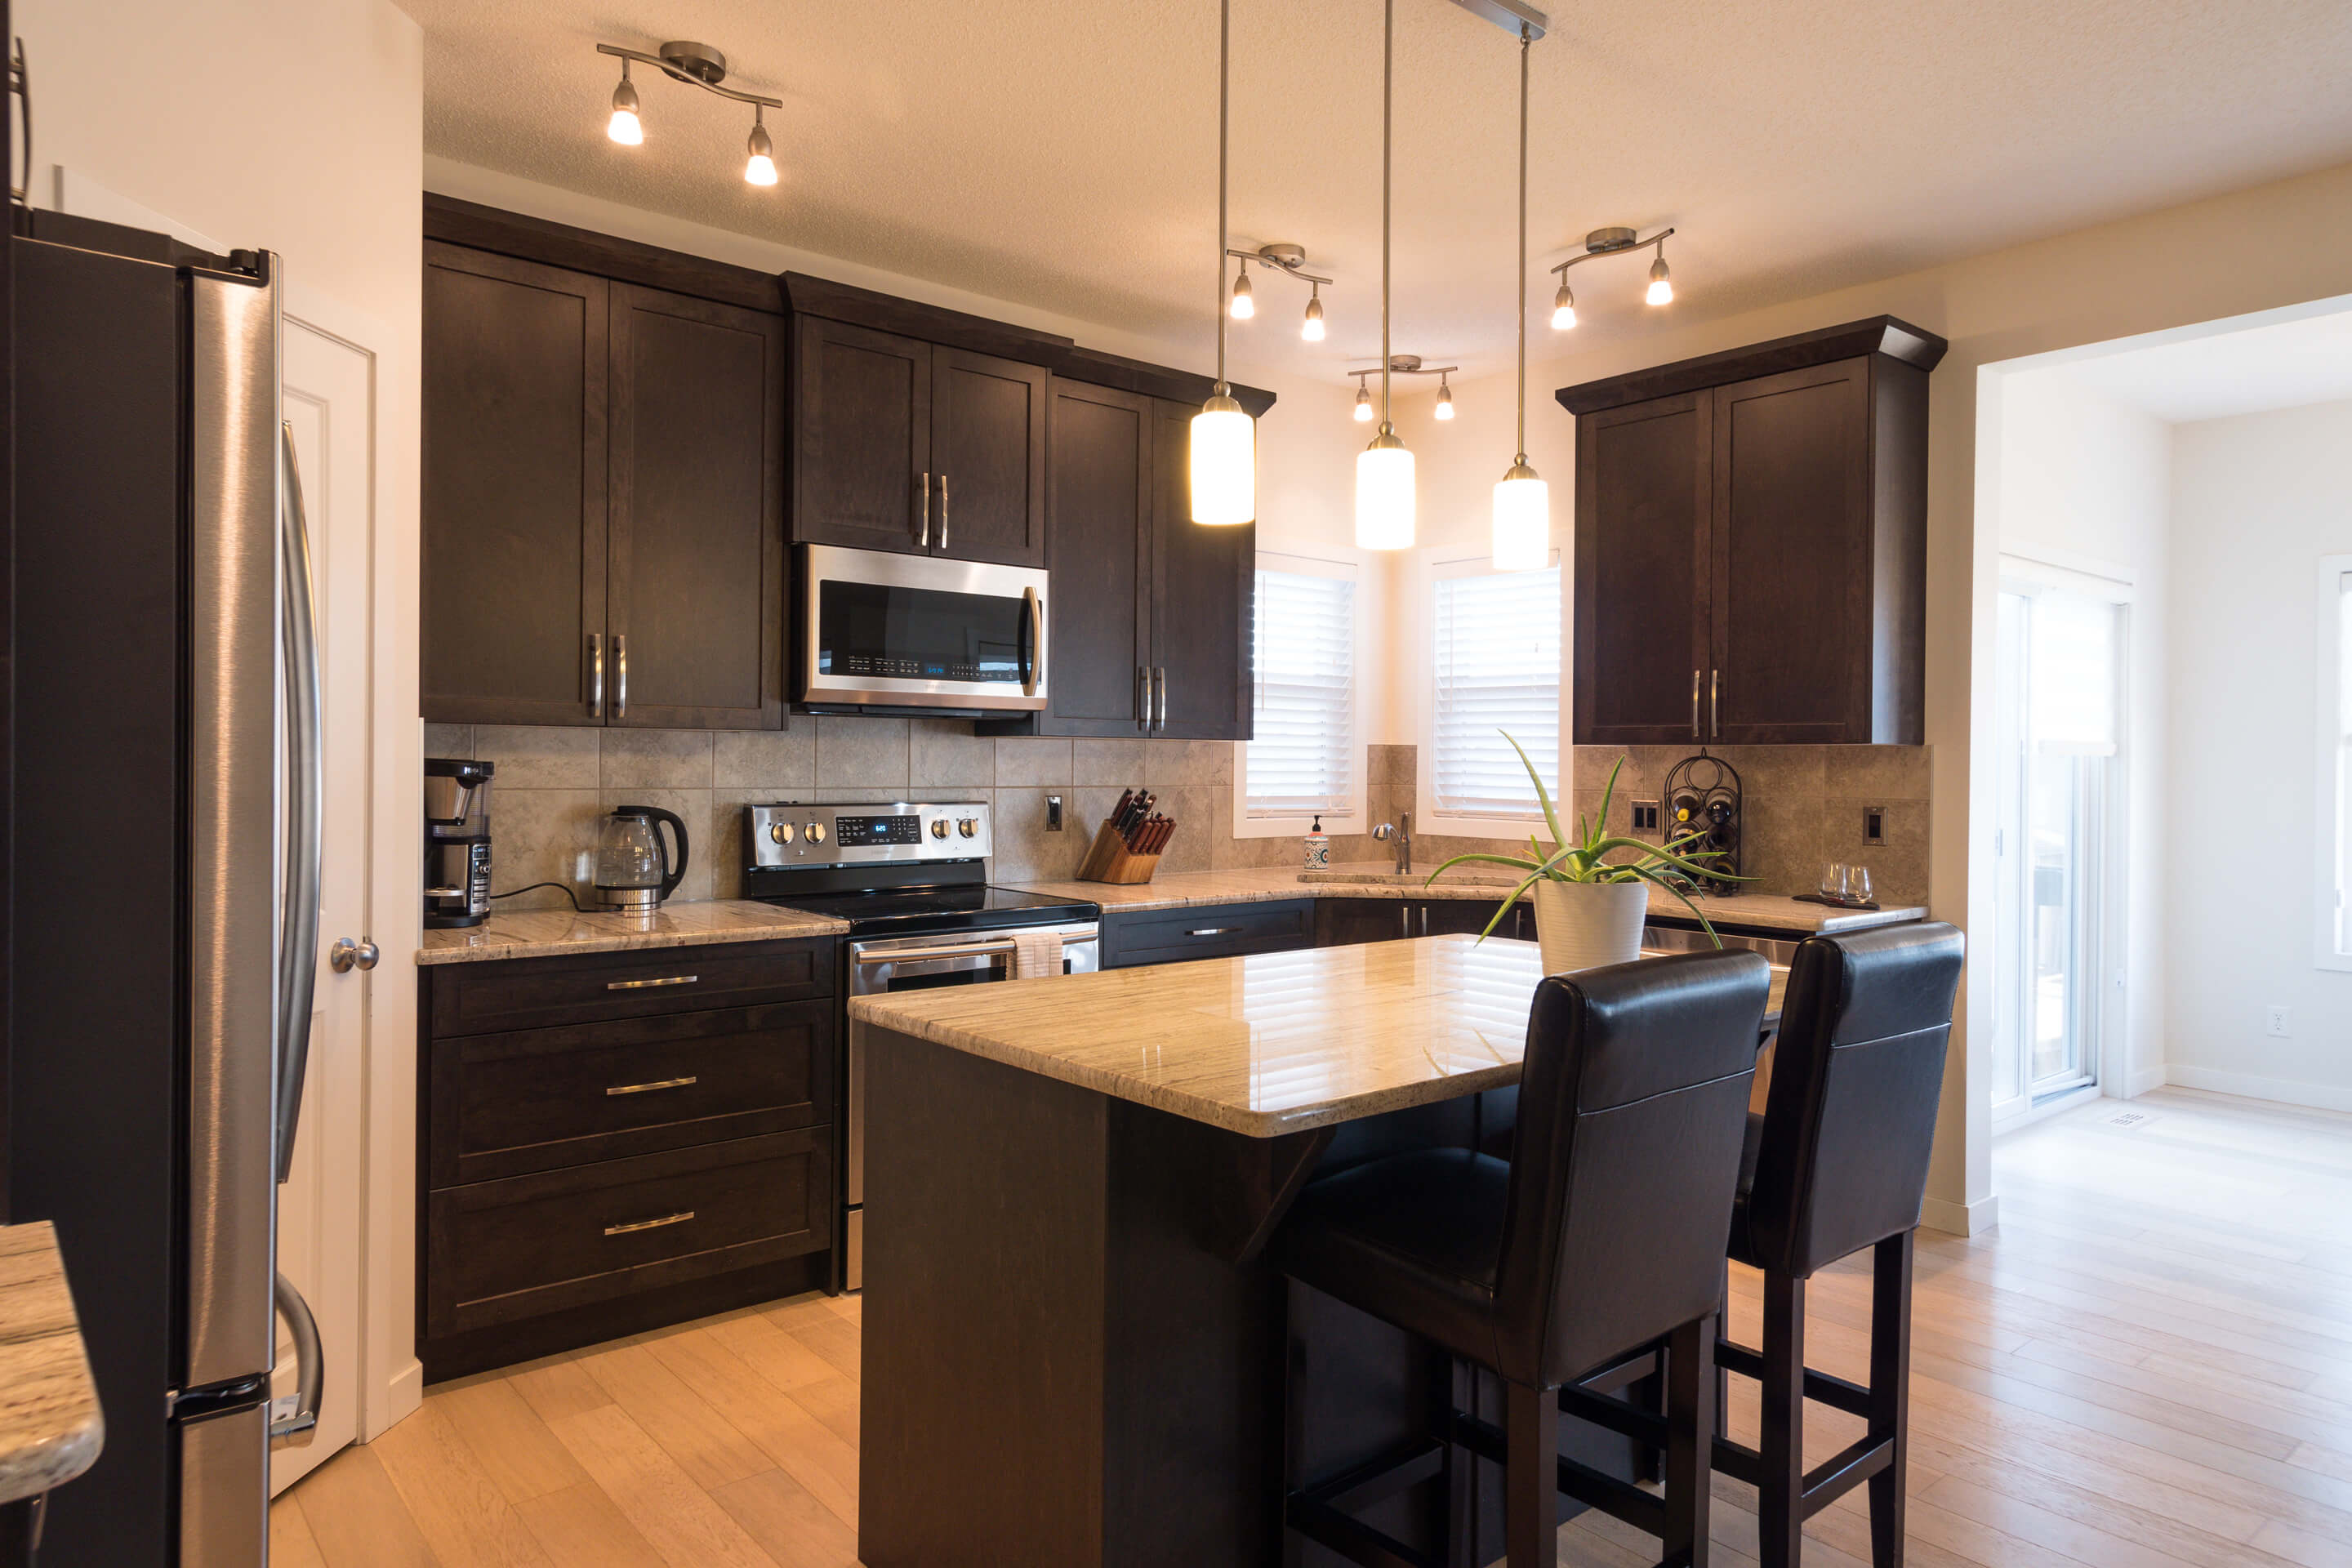 Hello Gorgeous - 213 Hillcrest Drive Airdrie - Tara Molina Real Estate (4 of 31)